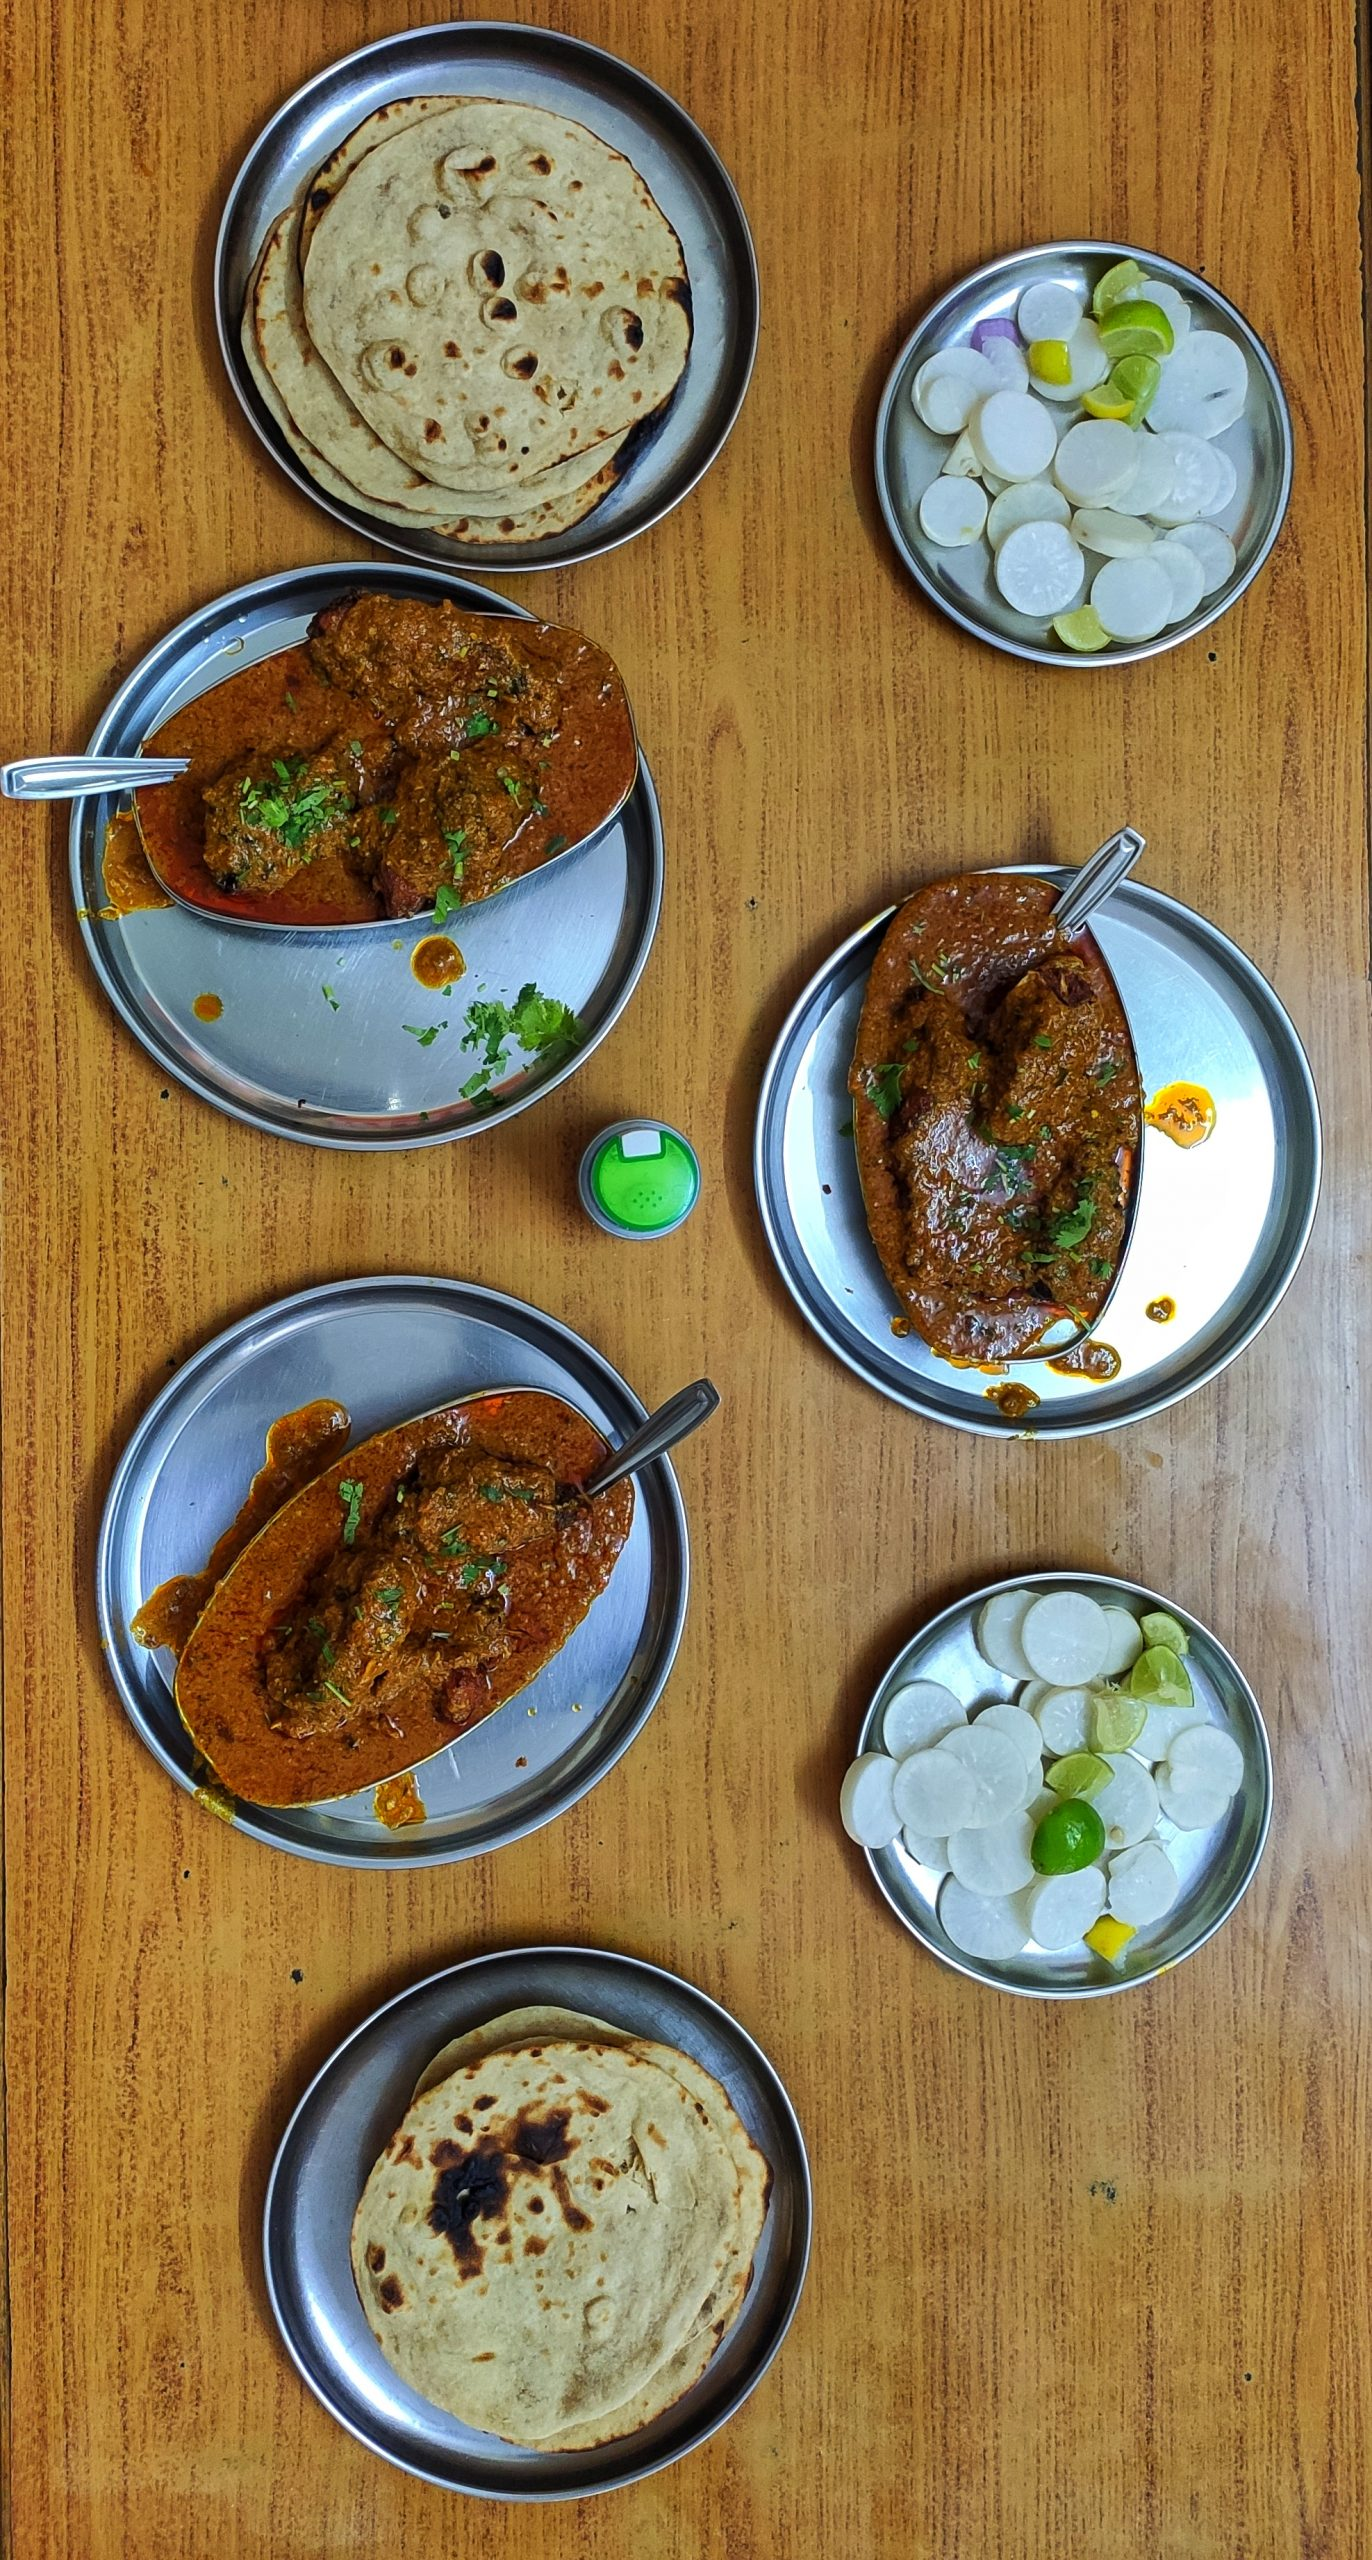 Fish curry plates on a table